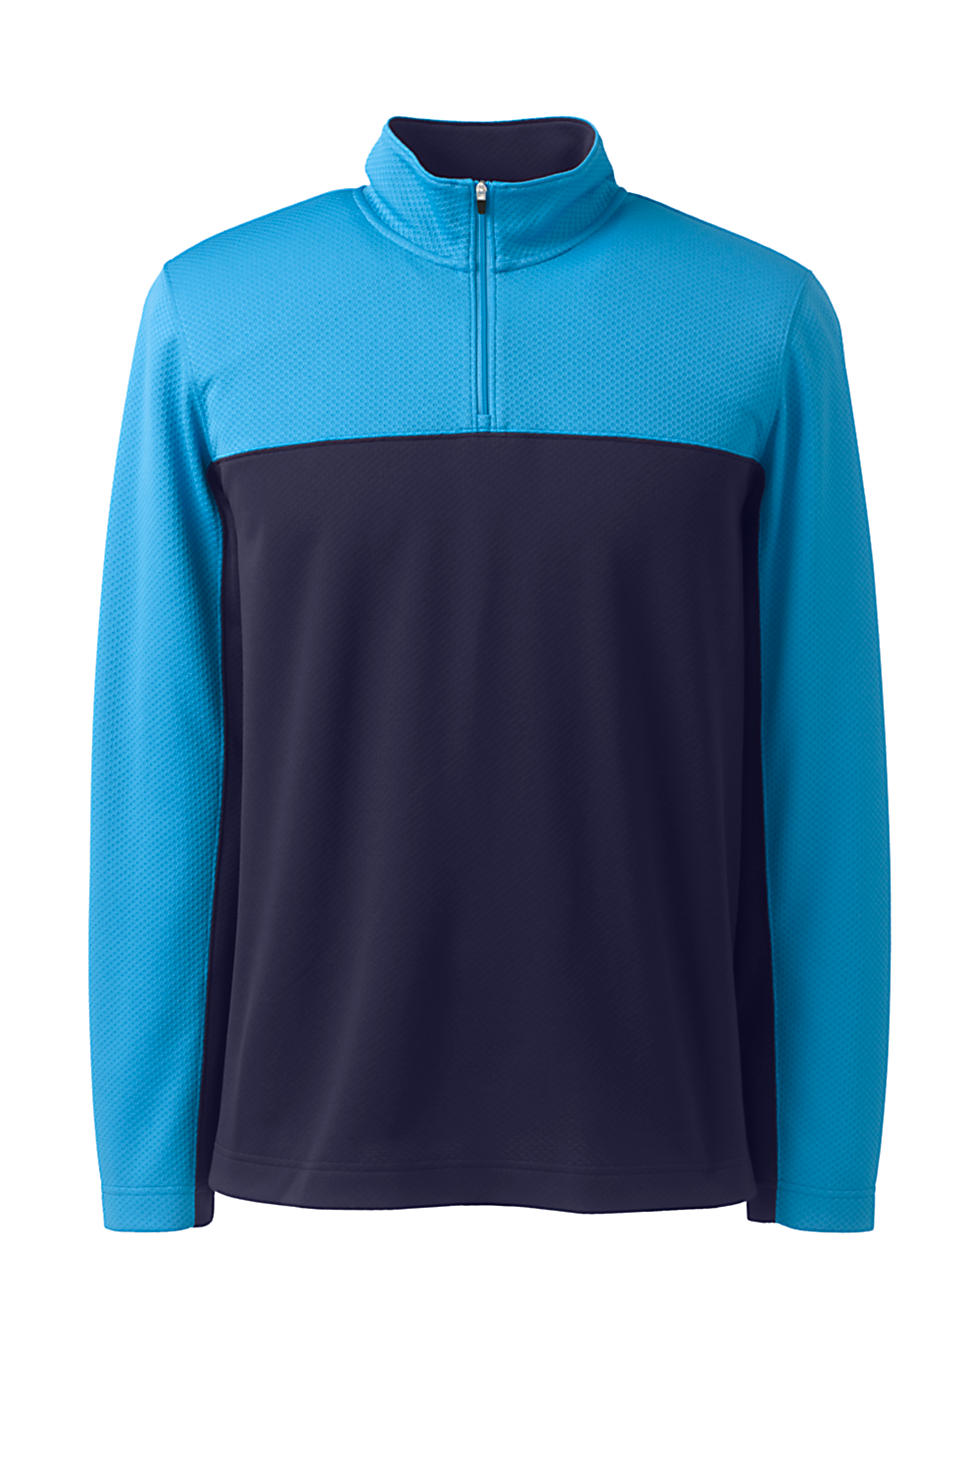 Lands End Mens Textured Colorblock Quarter Zip Pullover